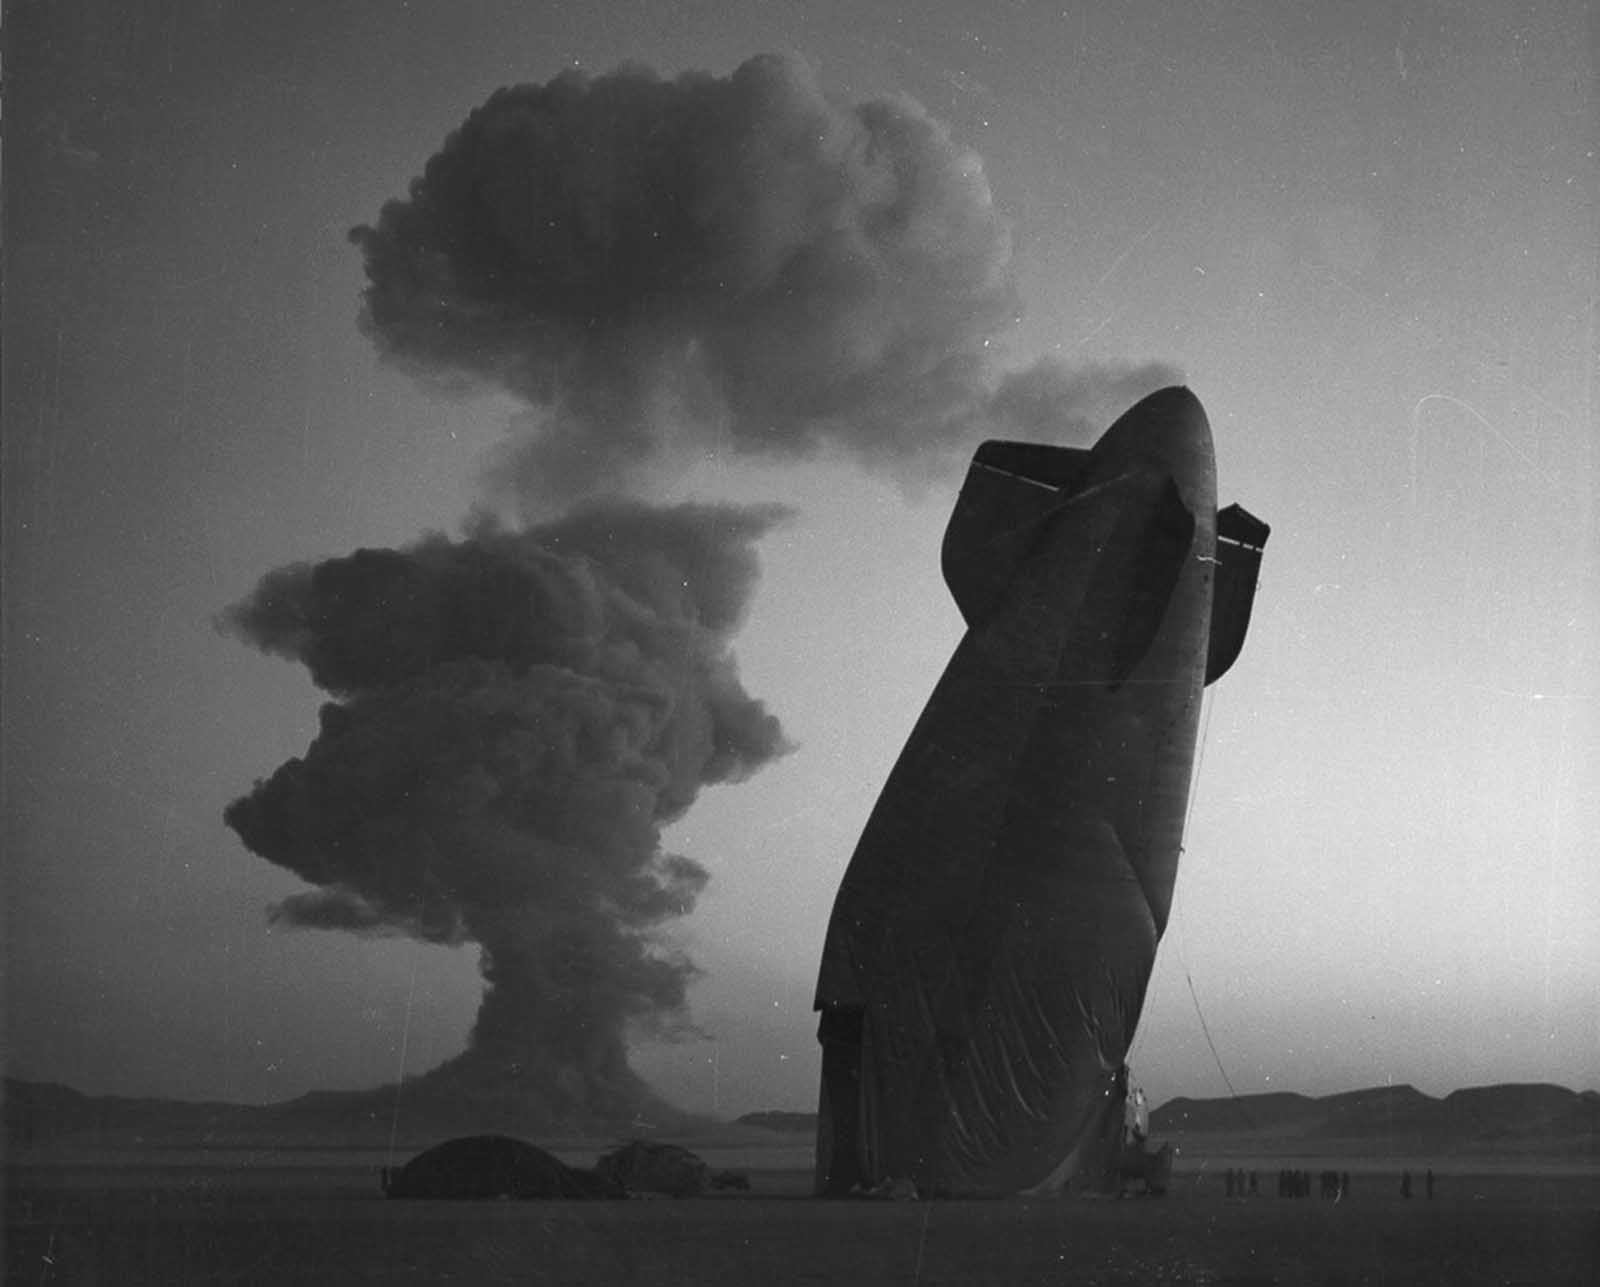 The tail section of a U.S. Navy blimp is shown with the Stokes cloud in the background at the Nevada Test Site on August 7, 1957. The blimp was in temporary free flight in excess of five miles from ground zero when it was collapsed by the shock wave from the blast. The airship was unmanned and was used in a military effects experiment.